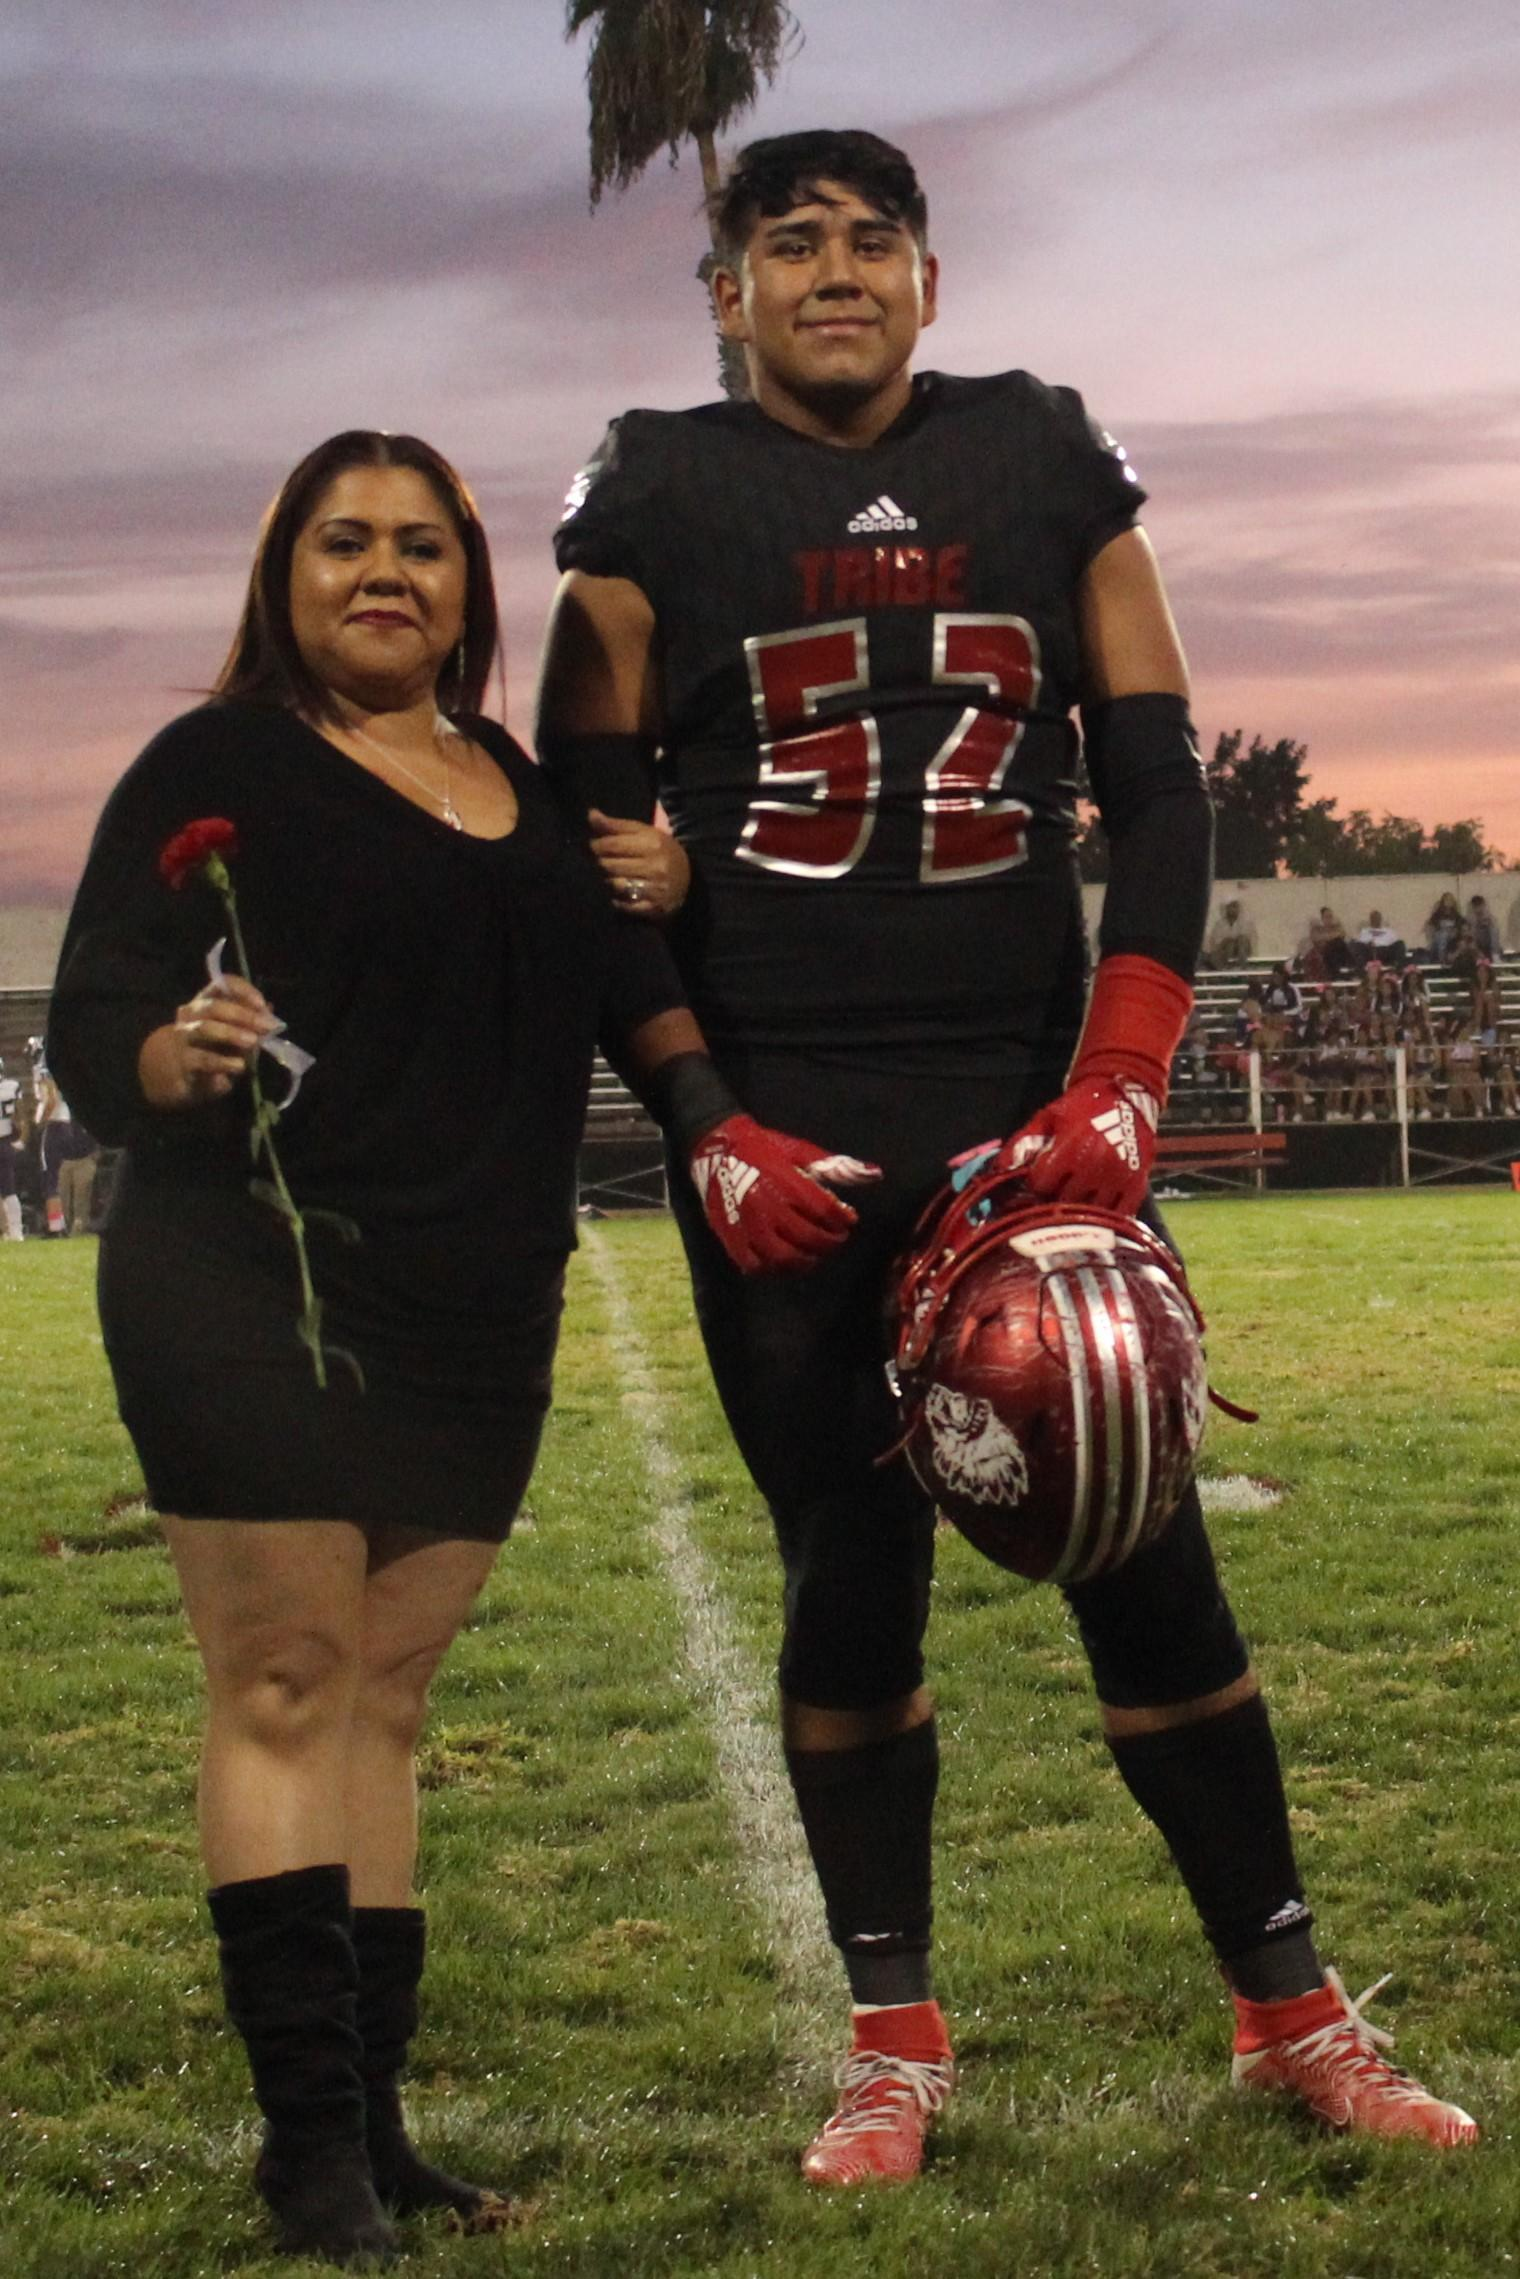 Senior football player Damian Rodriguez and his escort.